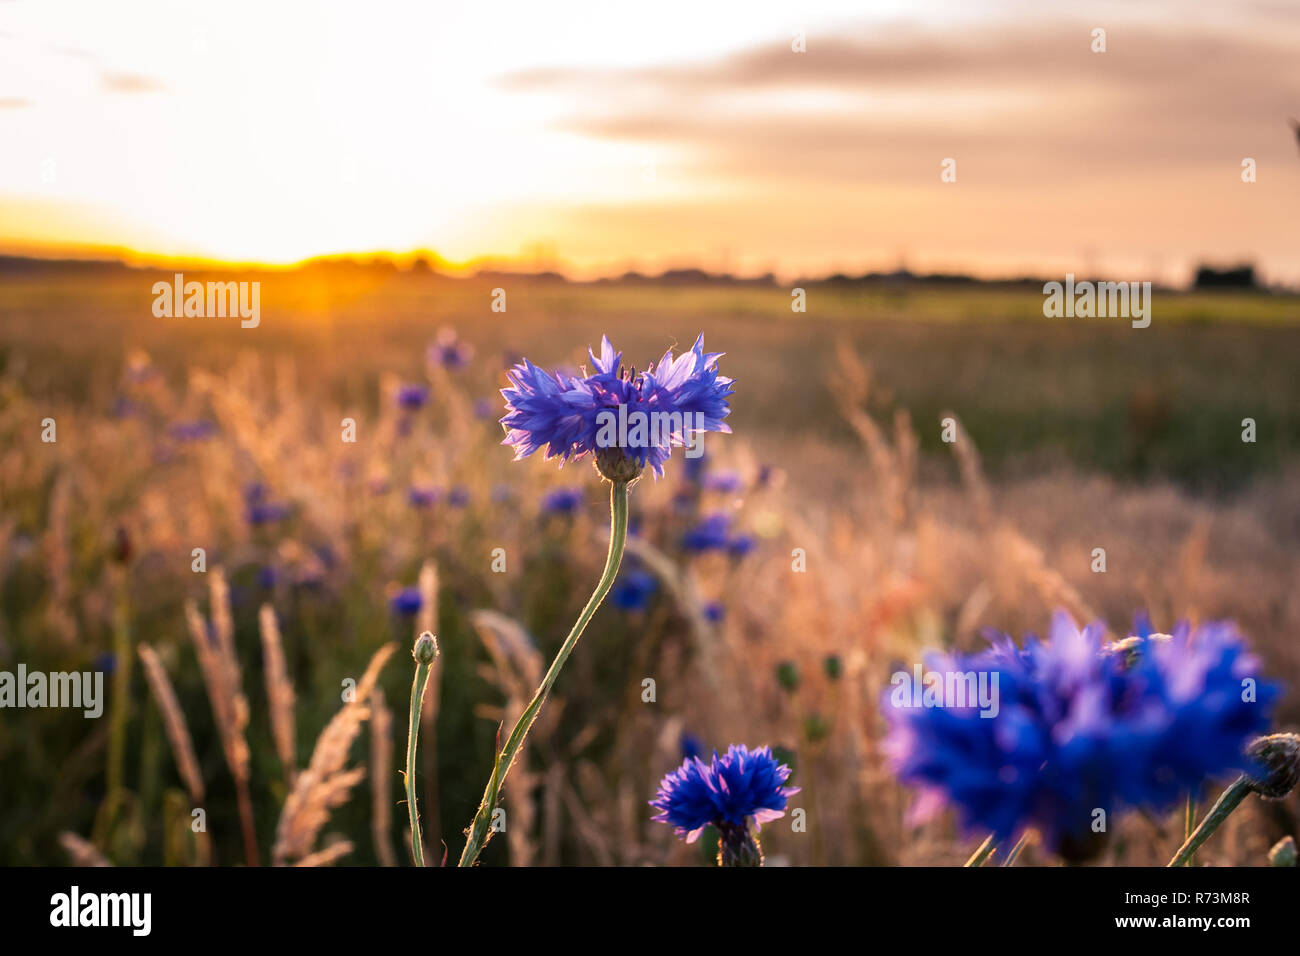 Blue and white cornflowers with bokeh, floral nature background.  Warm, atmospheric sultry summer evening with backlight in the country side of the Ne - Stock Image